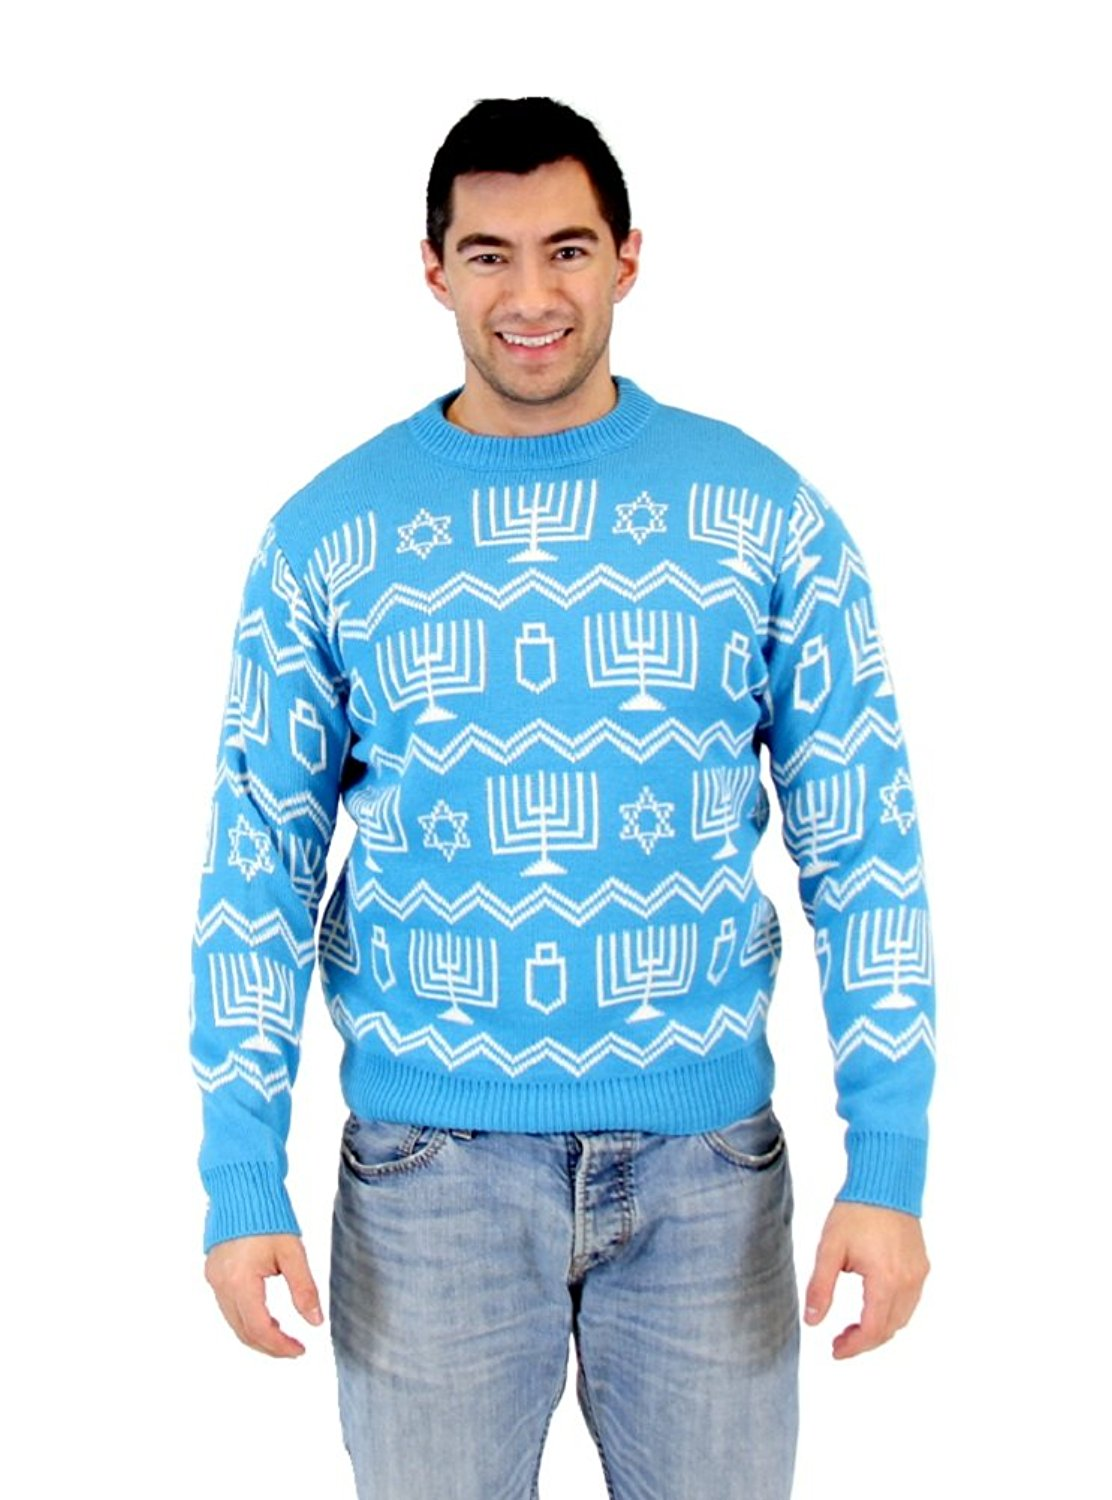 Hanukkah Symbols Pattern Ugly Sweater by Costume Agent